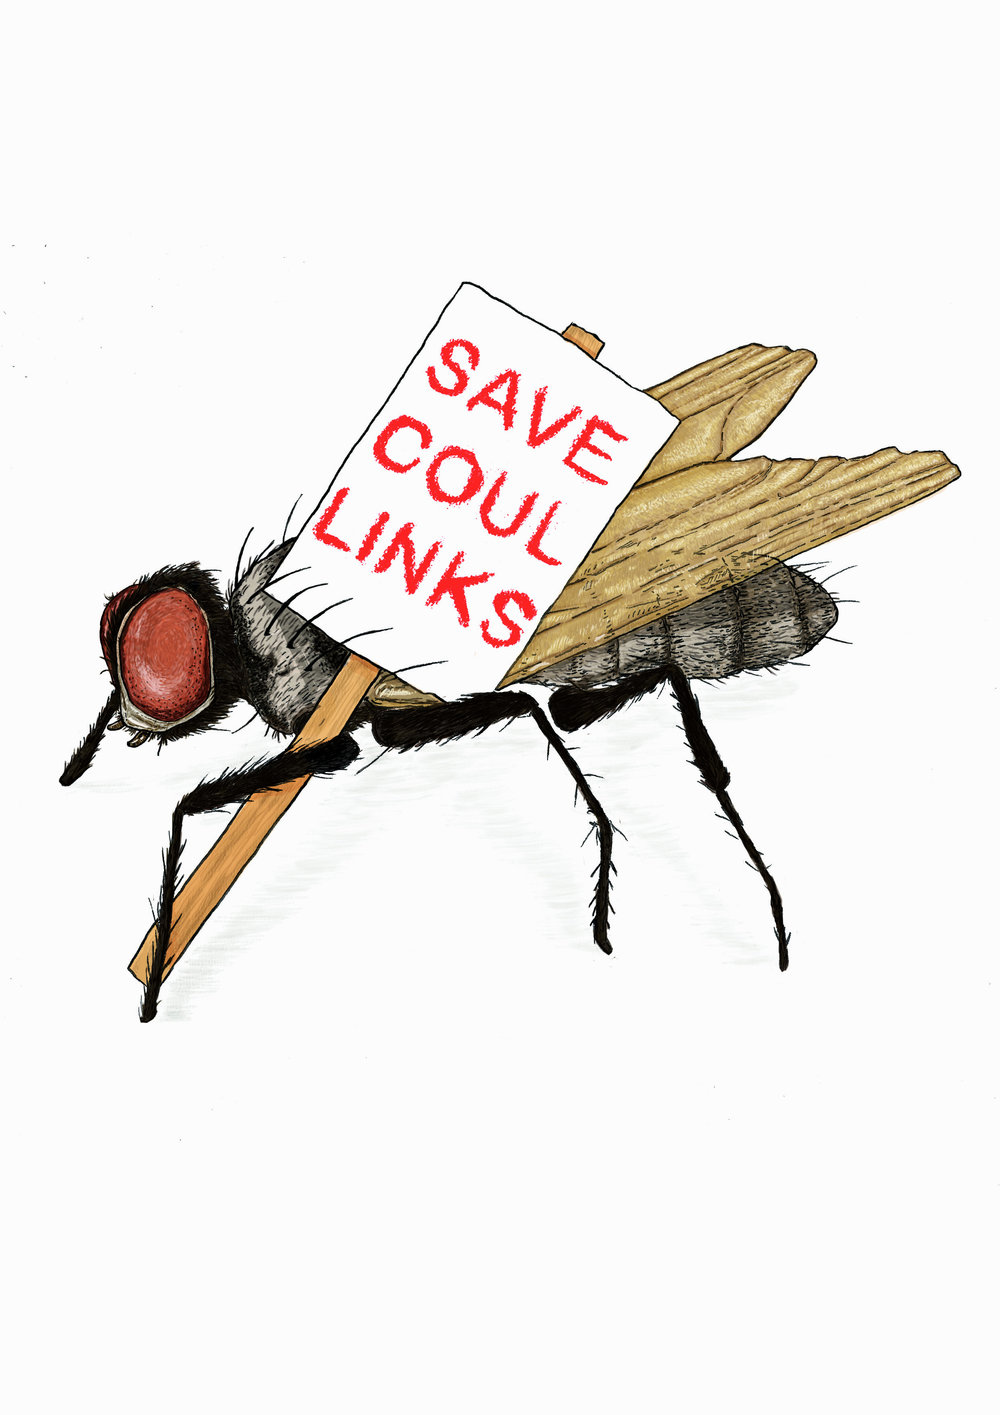 Save Coul Links